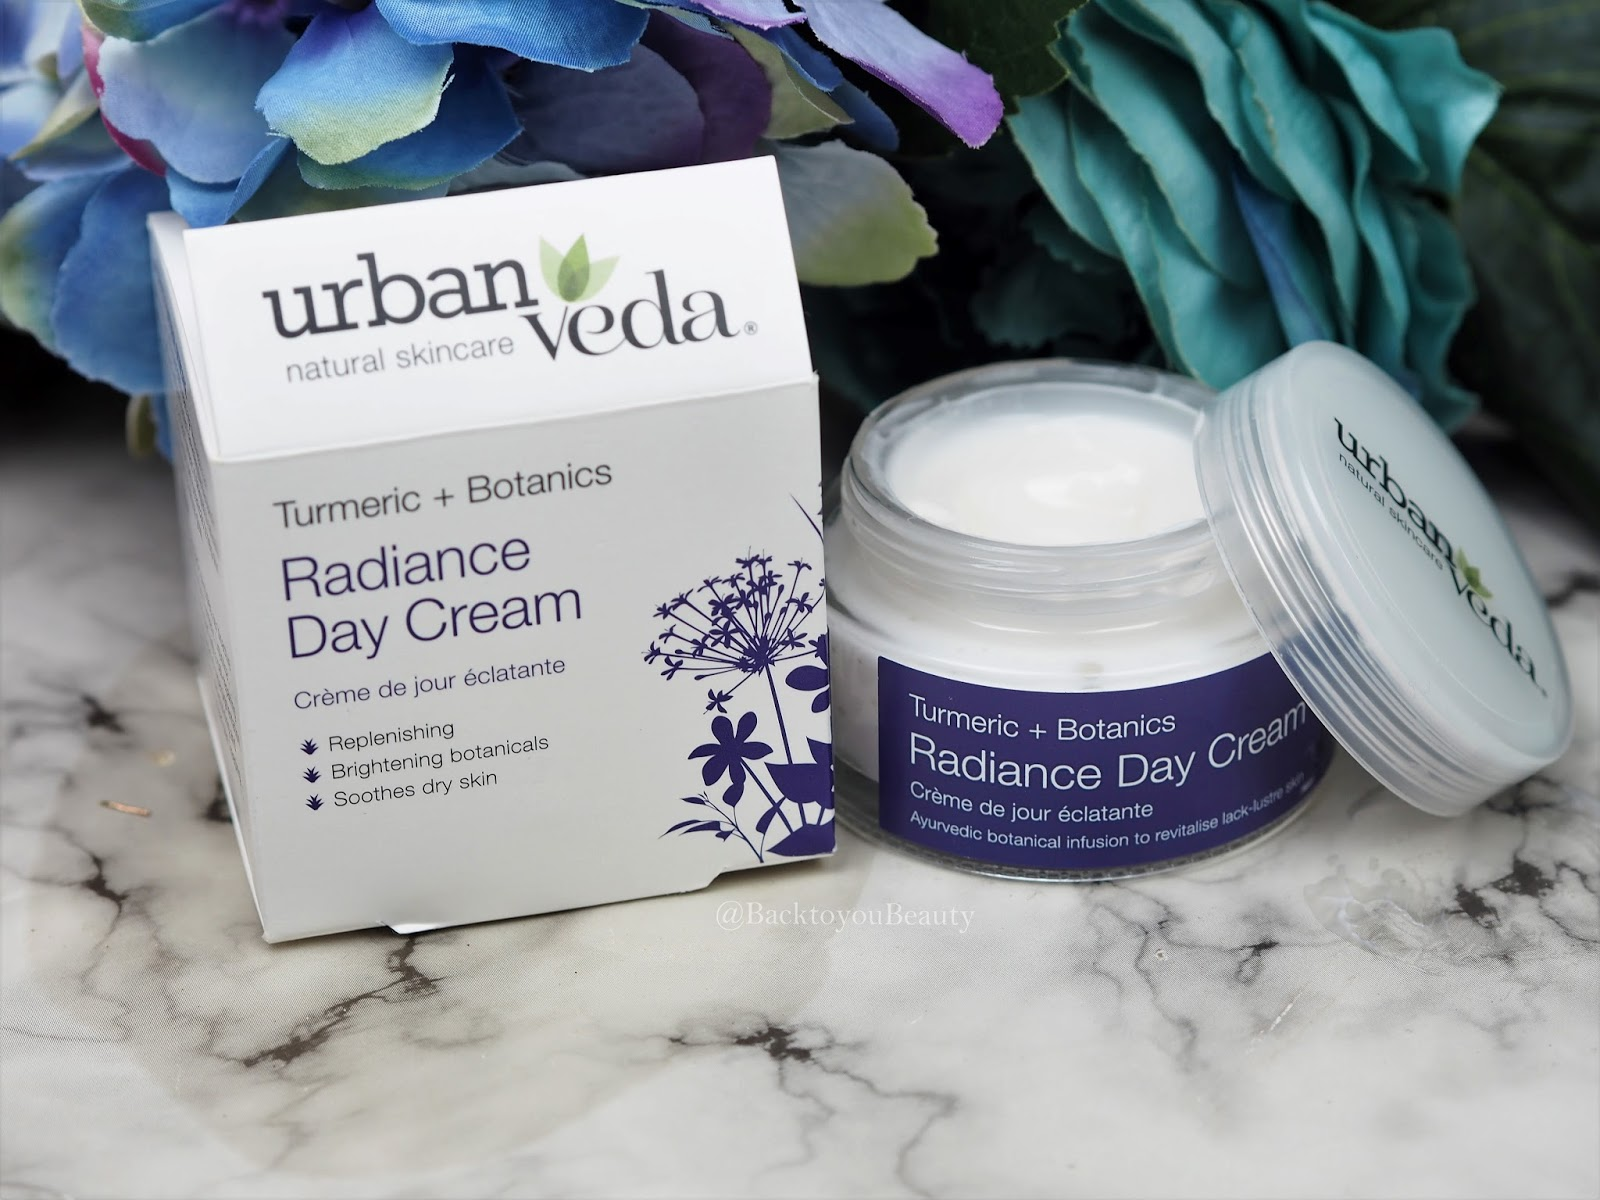 Urban Veda Turmeric + Botanics Radiance Day Cream 50ml